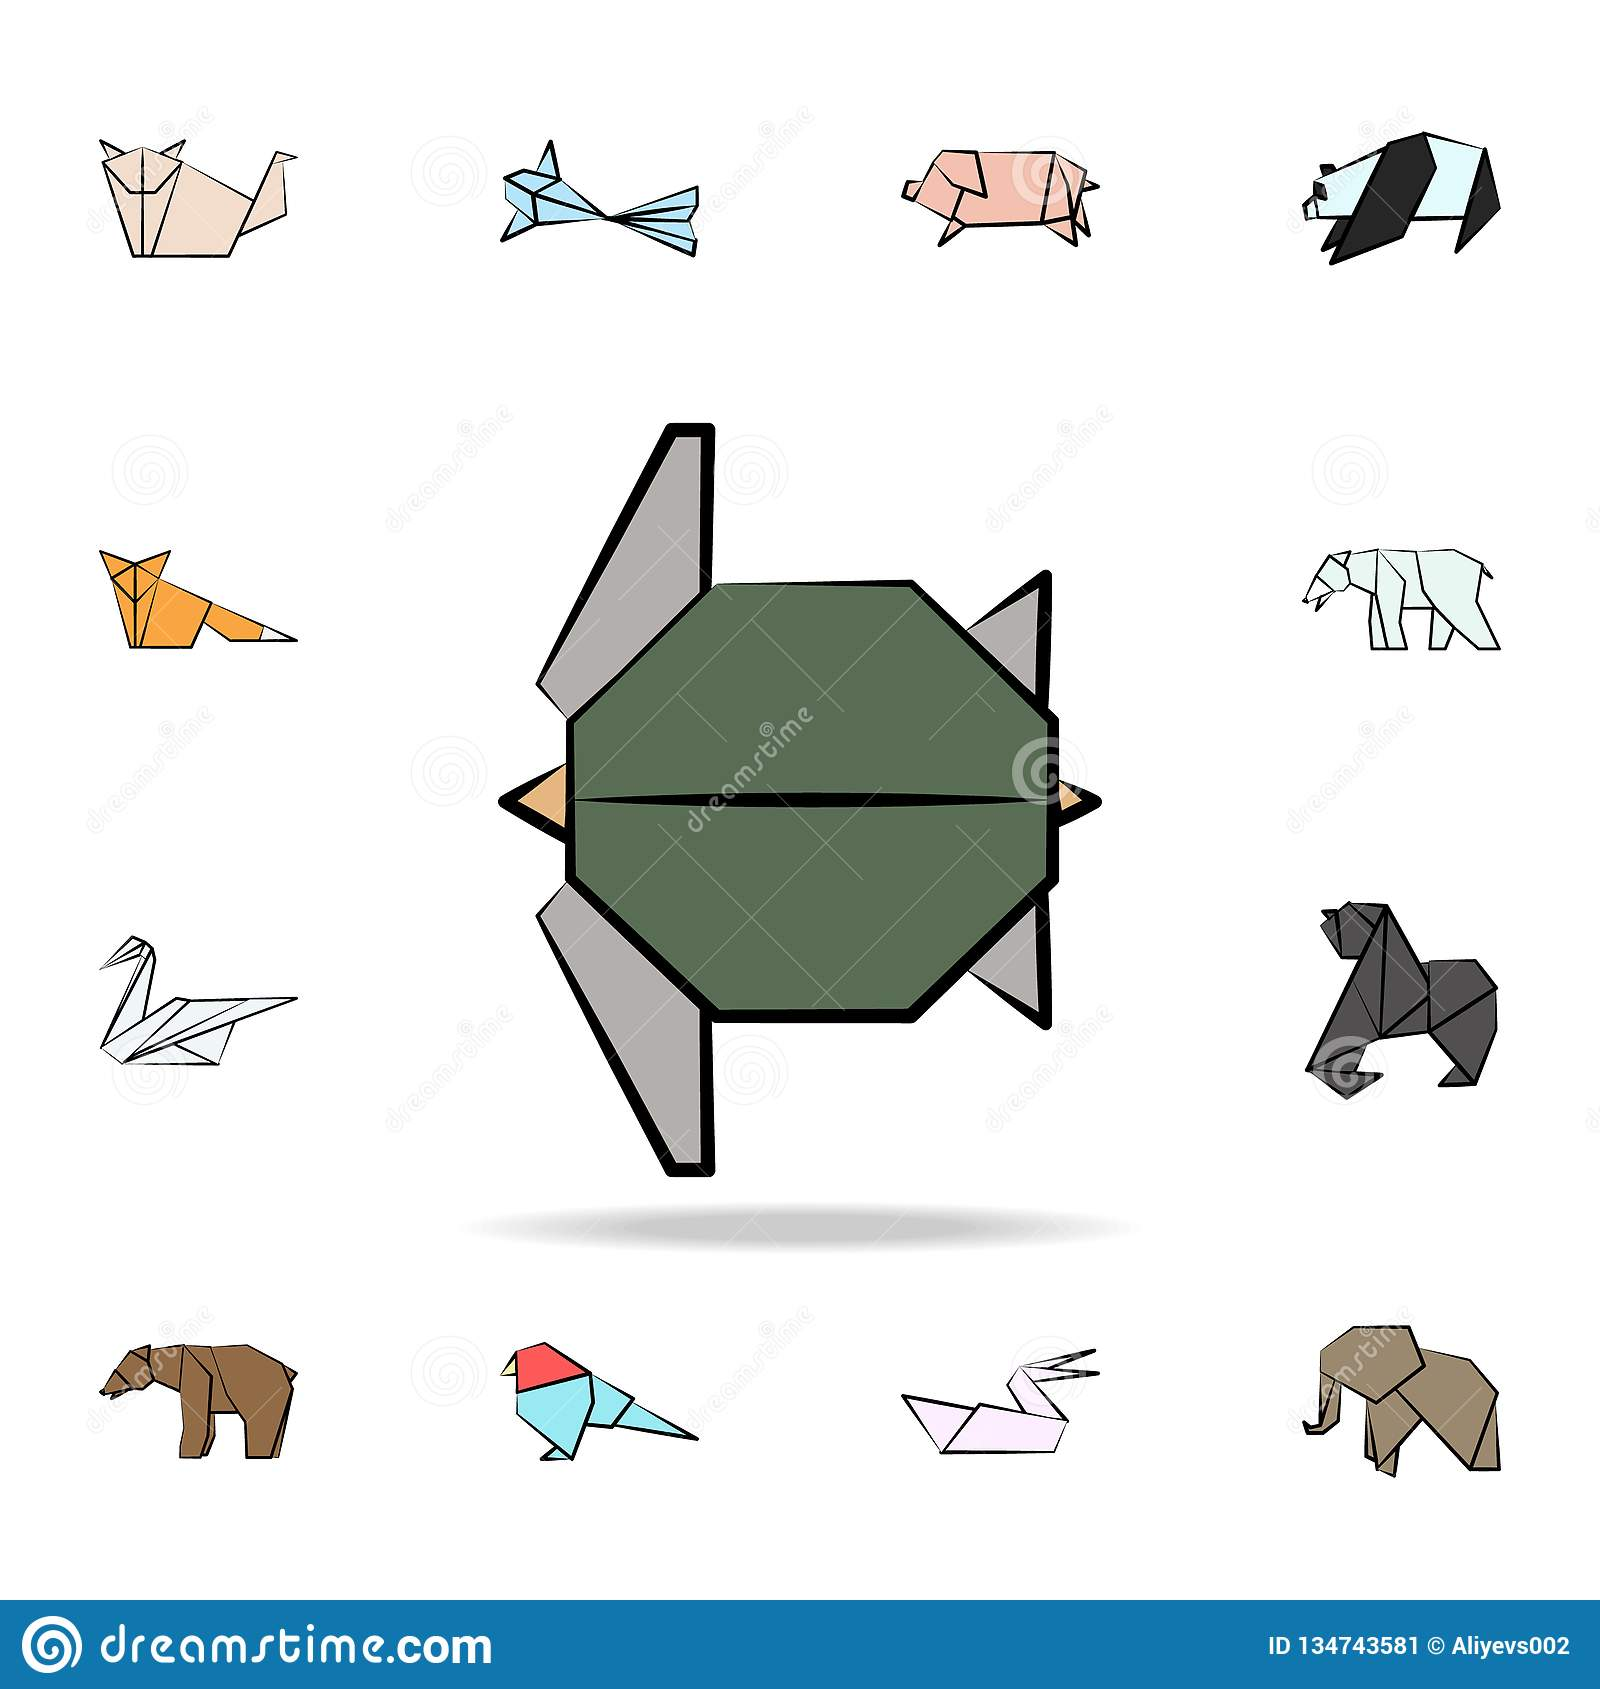 turtle colored origami icon. Detailed set of origami animal in hand drawn style icons. Premium graphic design. One of the